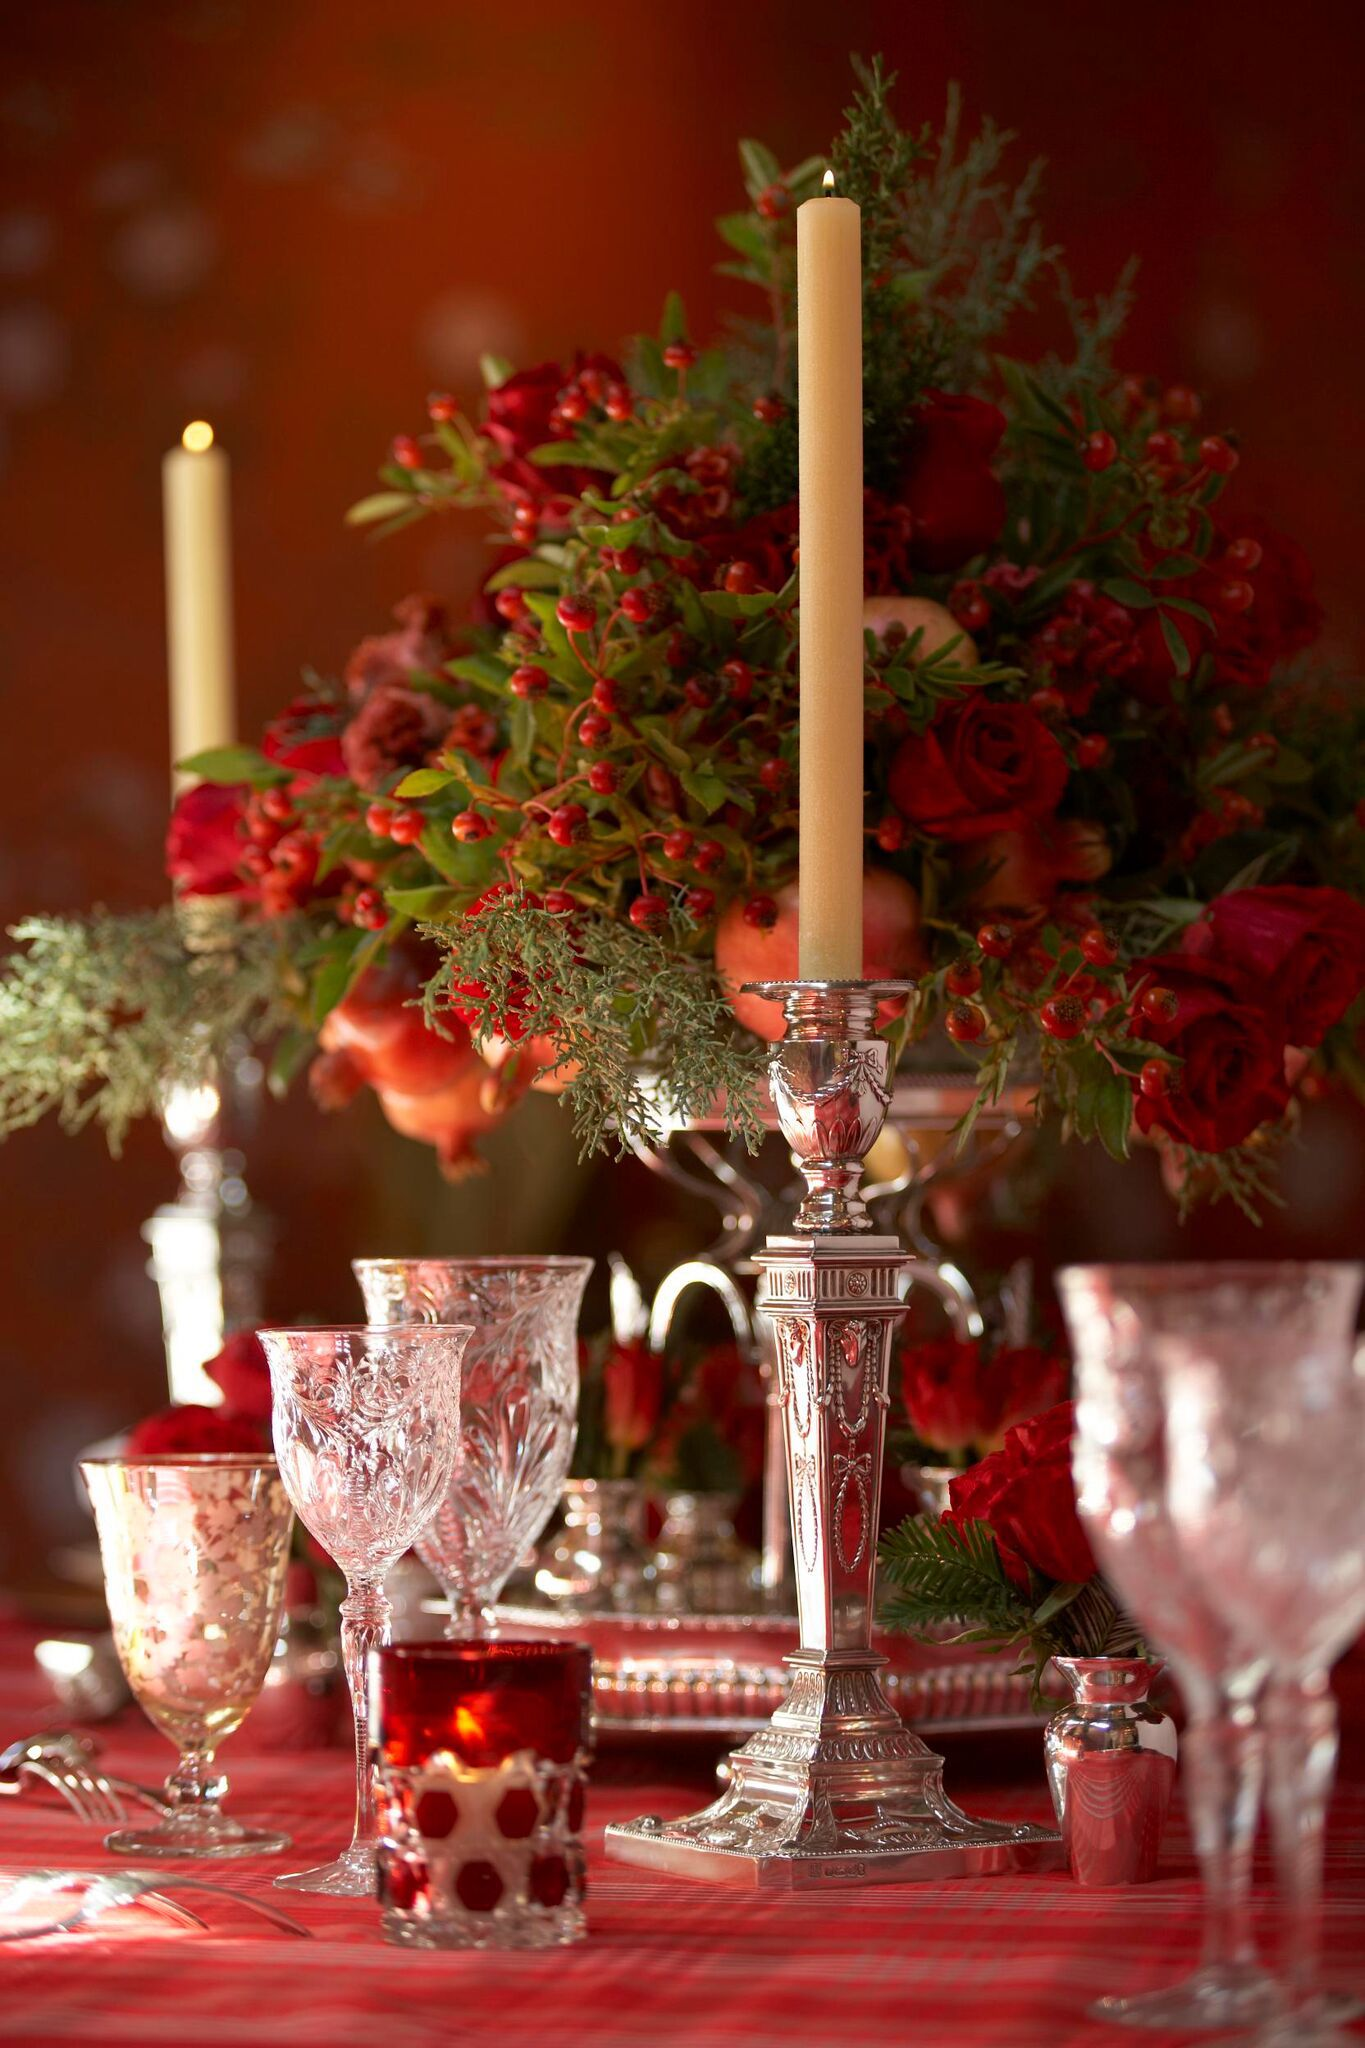 Her holiday tablescape